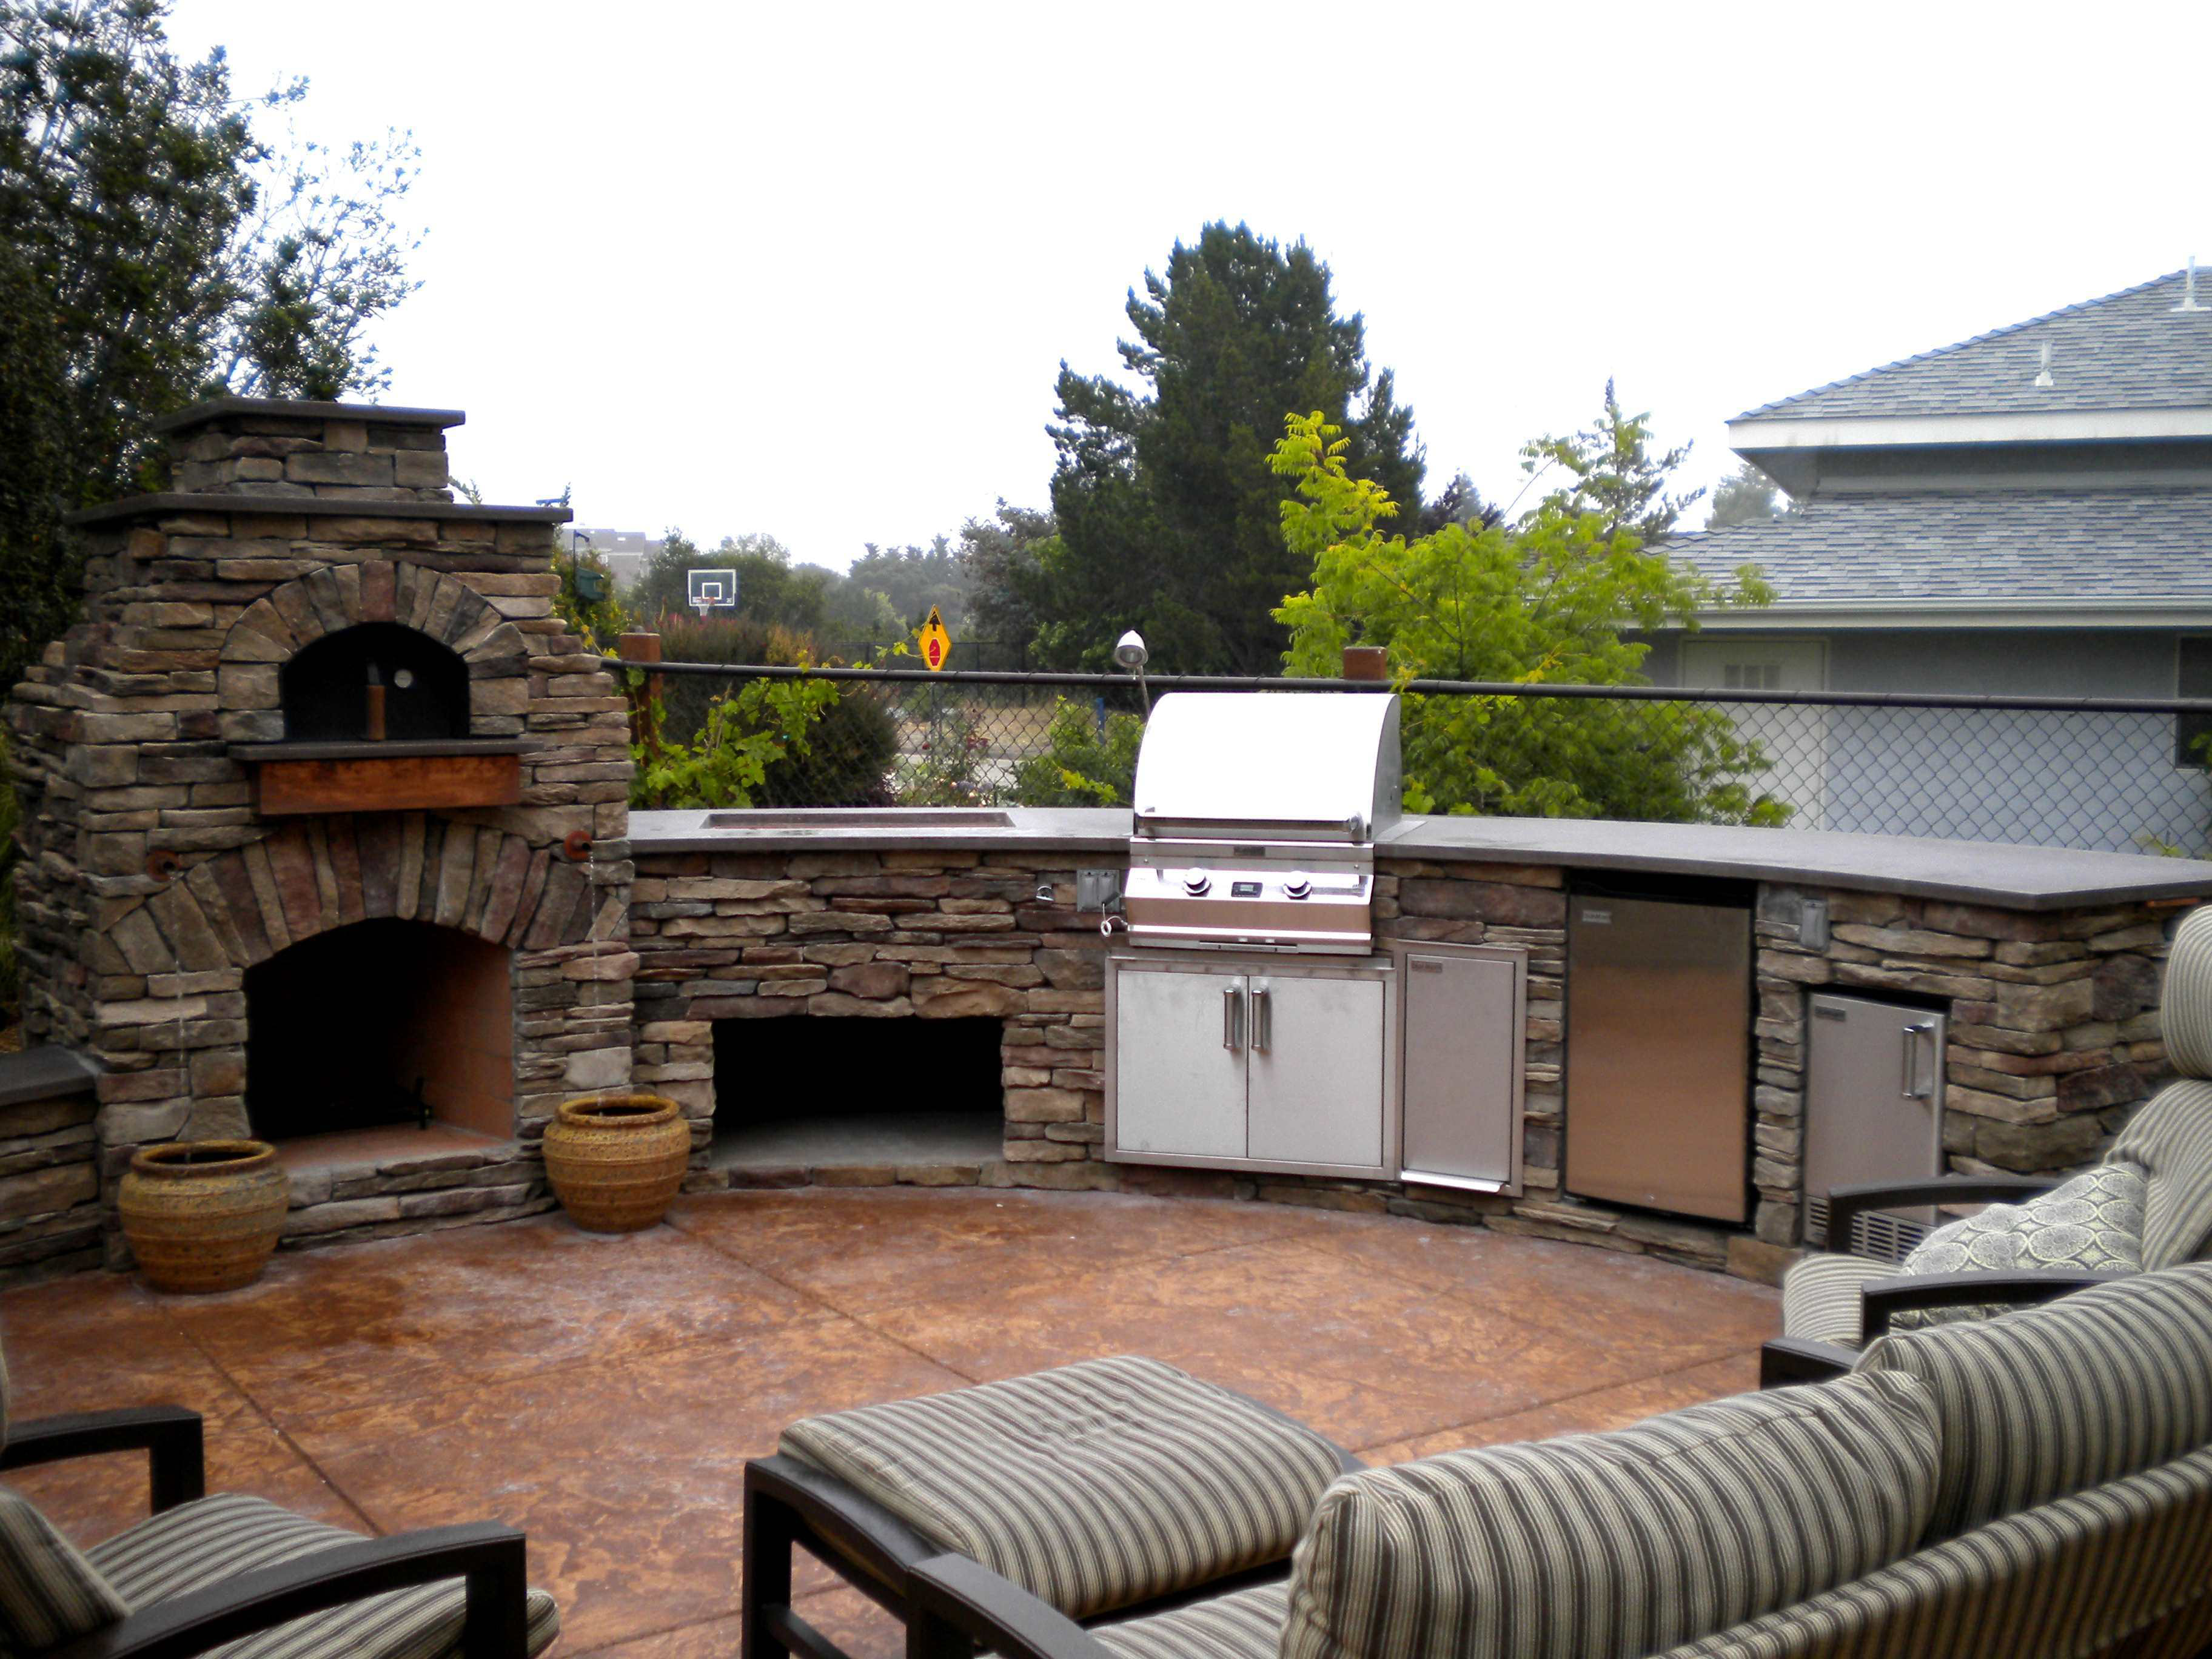 Pizza Ovens Are Becoming Popular Patio Instillations And Can Make Quite A  Statement In The Landscape Great Ideas